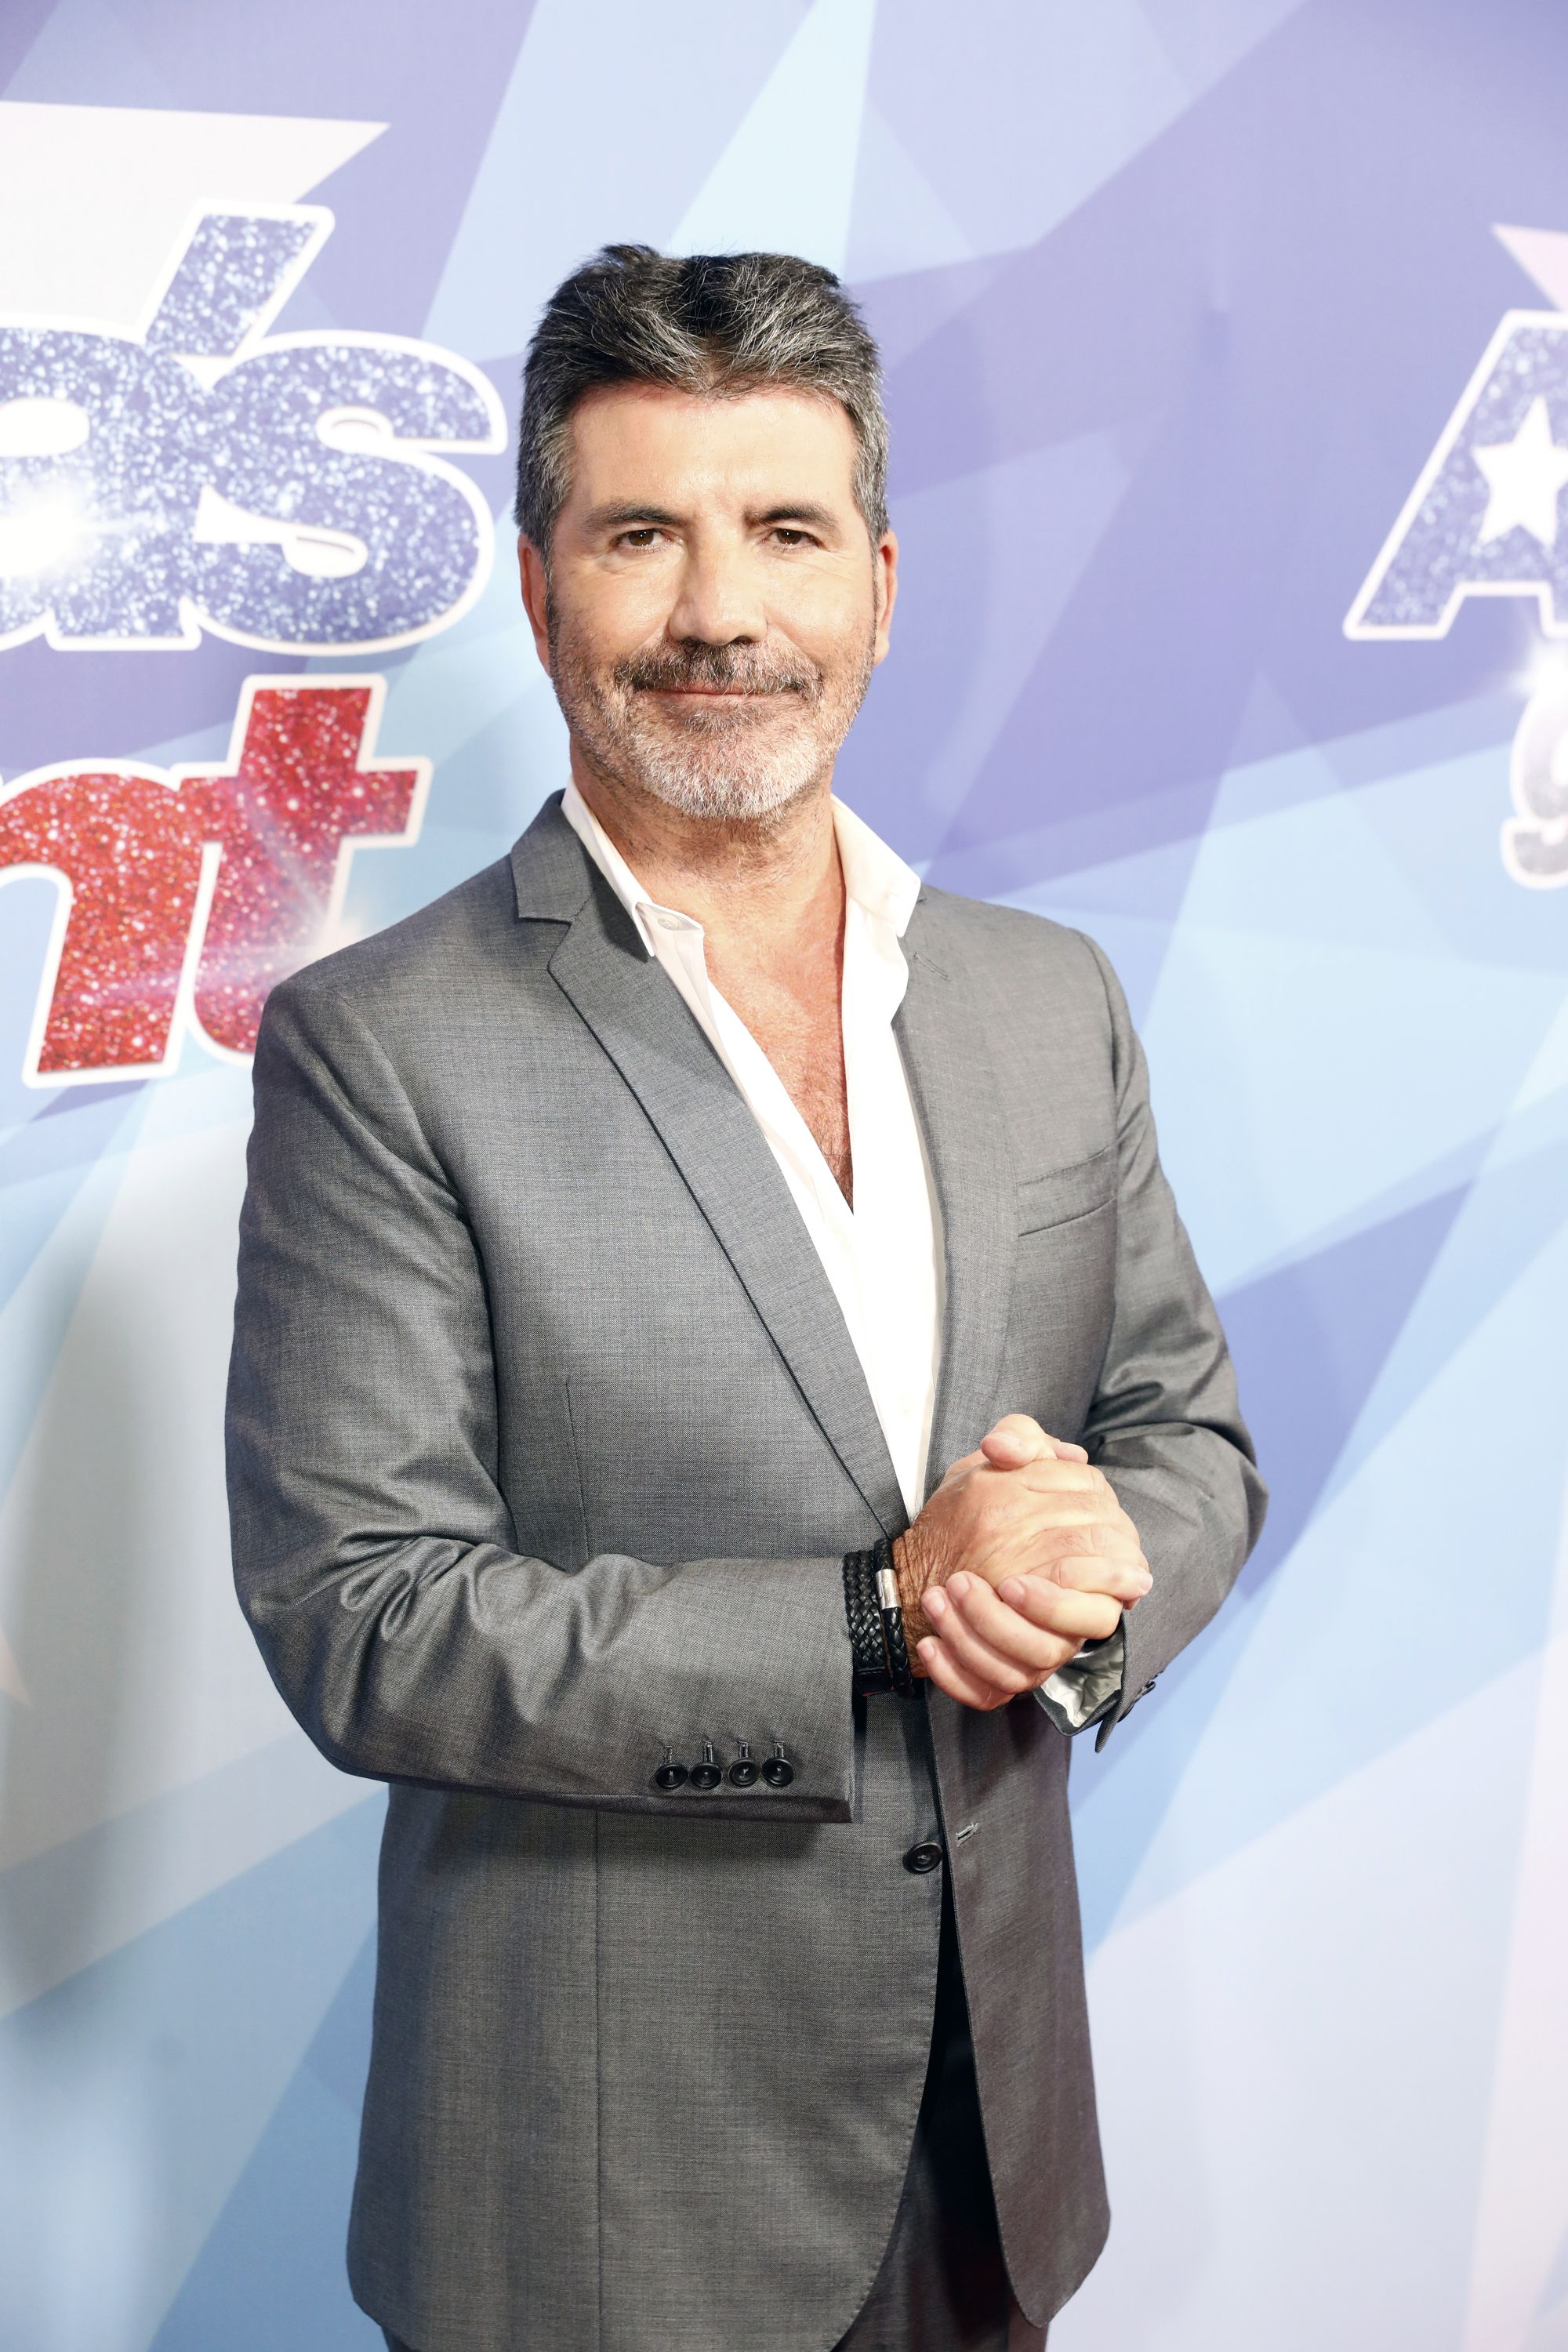 Simon Cowells Net Worth Heres The Backstory Of The Americas Got Talent Judge